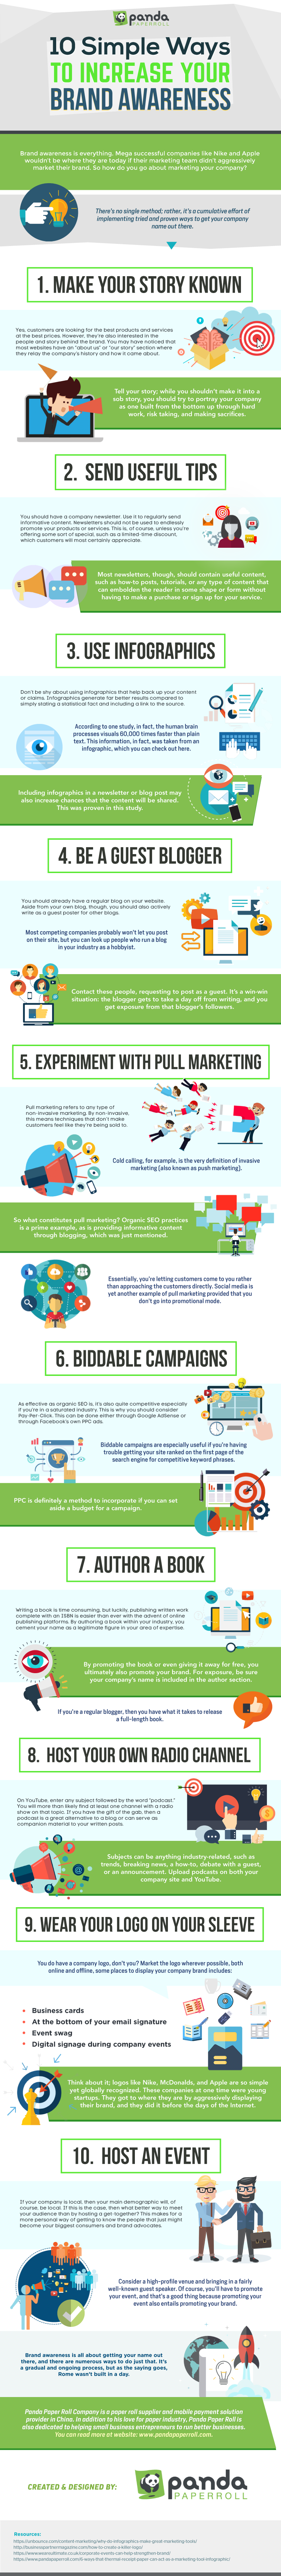 10-Simple-Ways-to-Increase-Your-Brand-Awareness-Infographic